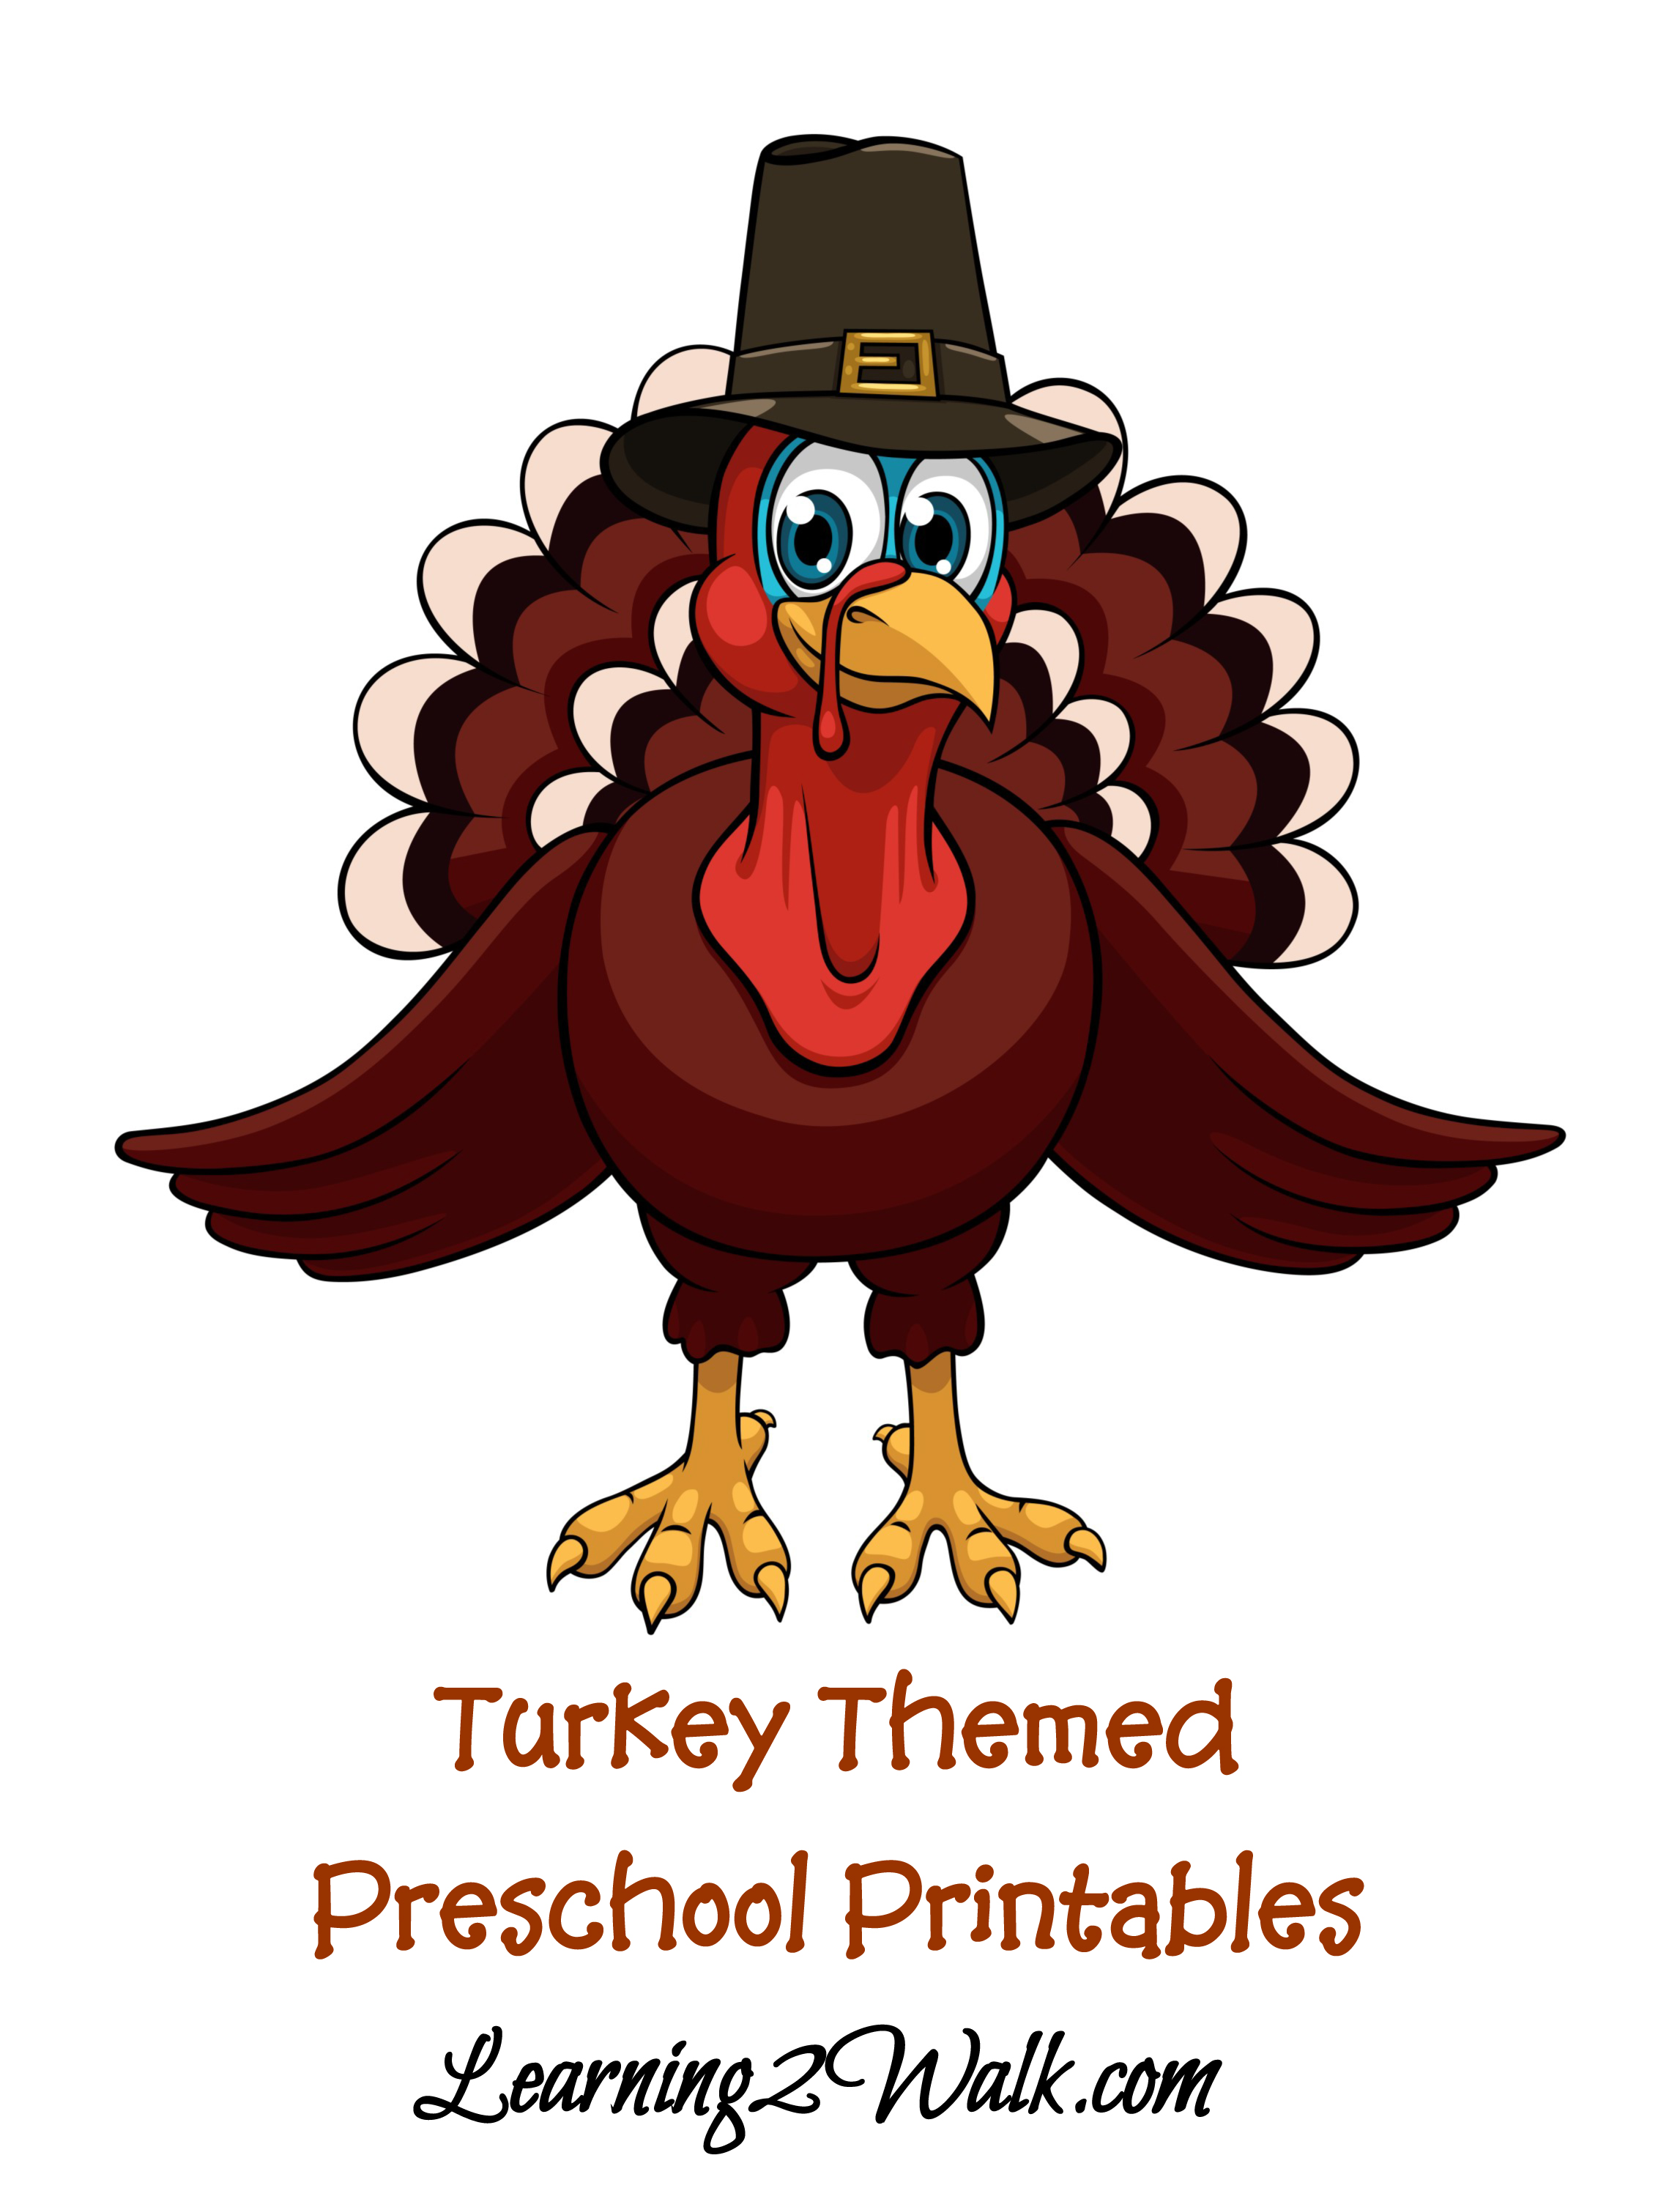 Free Turkey Printable Preschool Kit